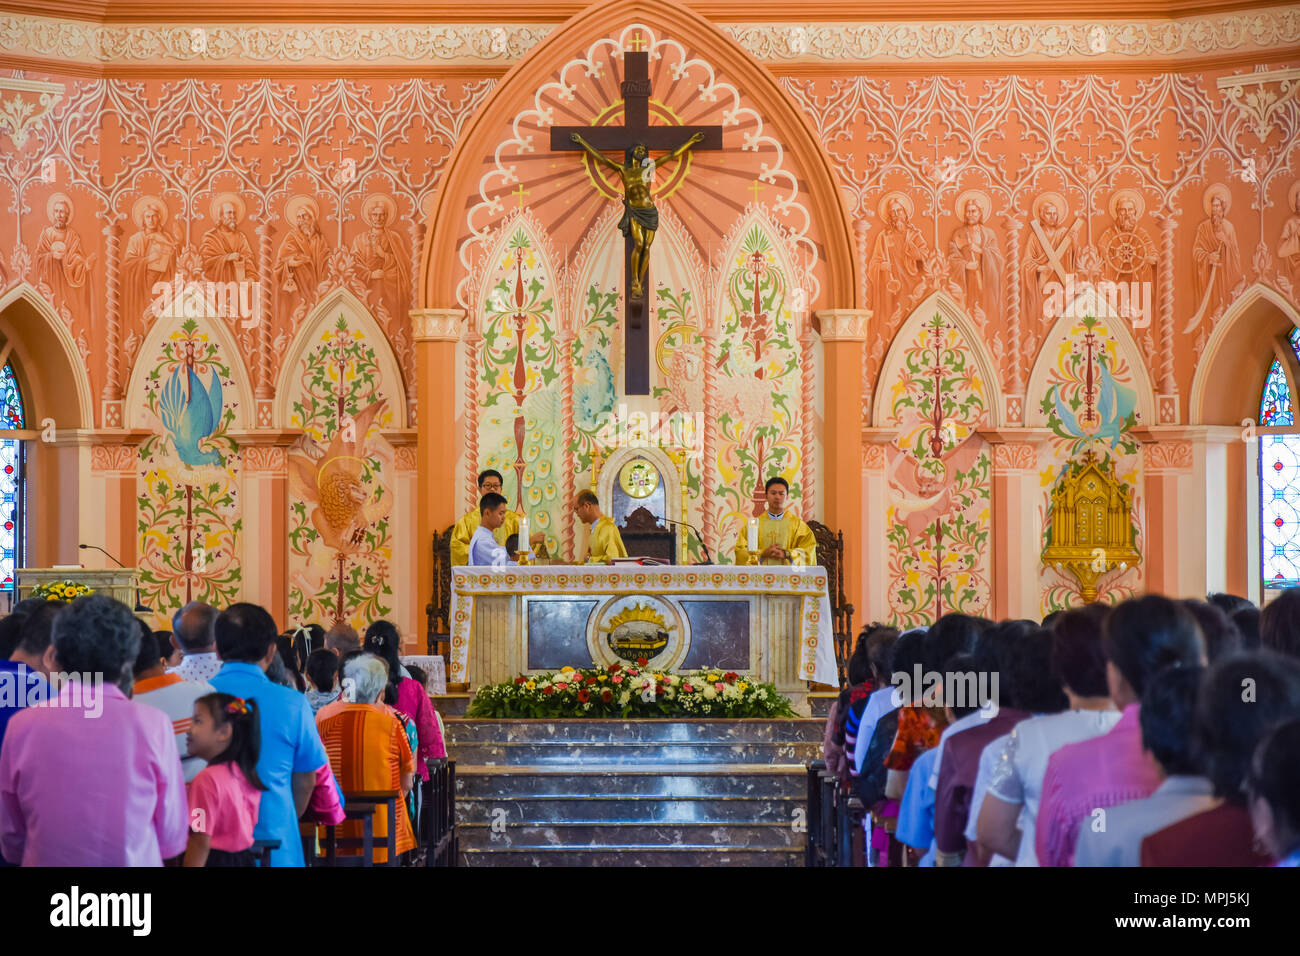 Chantaburi, Thailand - January 1, 2016: Group of pastors doing religion ceremony  while Christian people standing to attend religion ceremony in occas - Stock Image